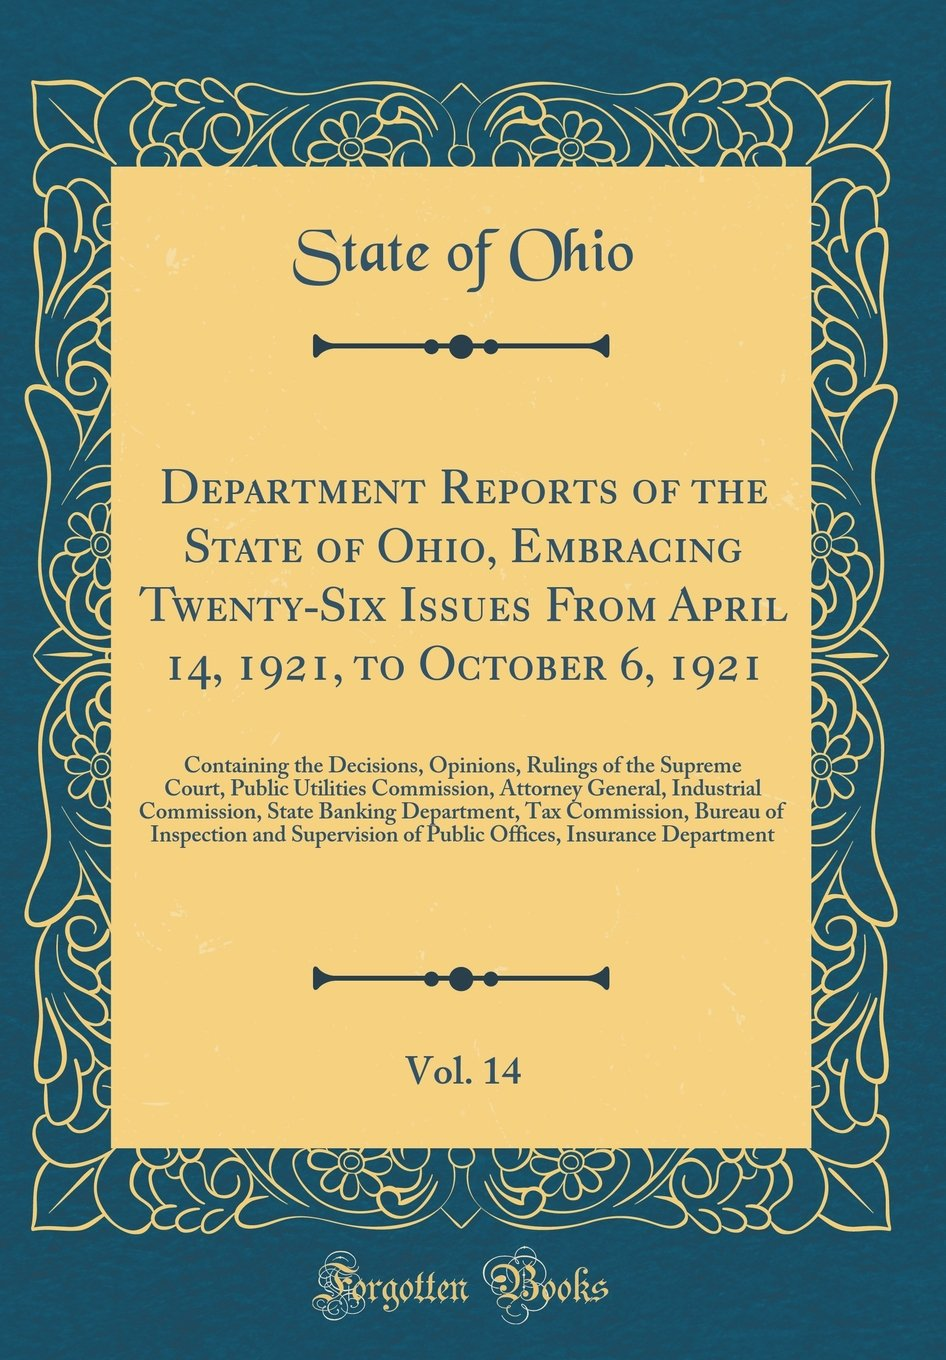 Read Online Department Reports of the State of Ohio, Embracing Twenty-Six Issues from April 14, 1921, to October 6, 1921, Vol. 14: Containing the Decisions. Attorney General, Industrial Commission, ebook